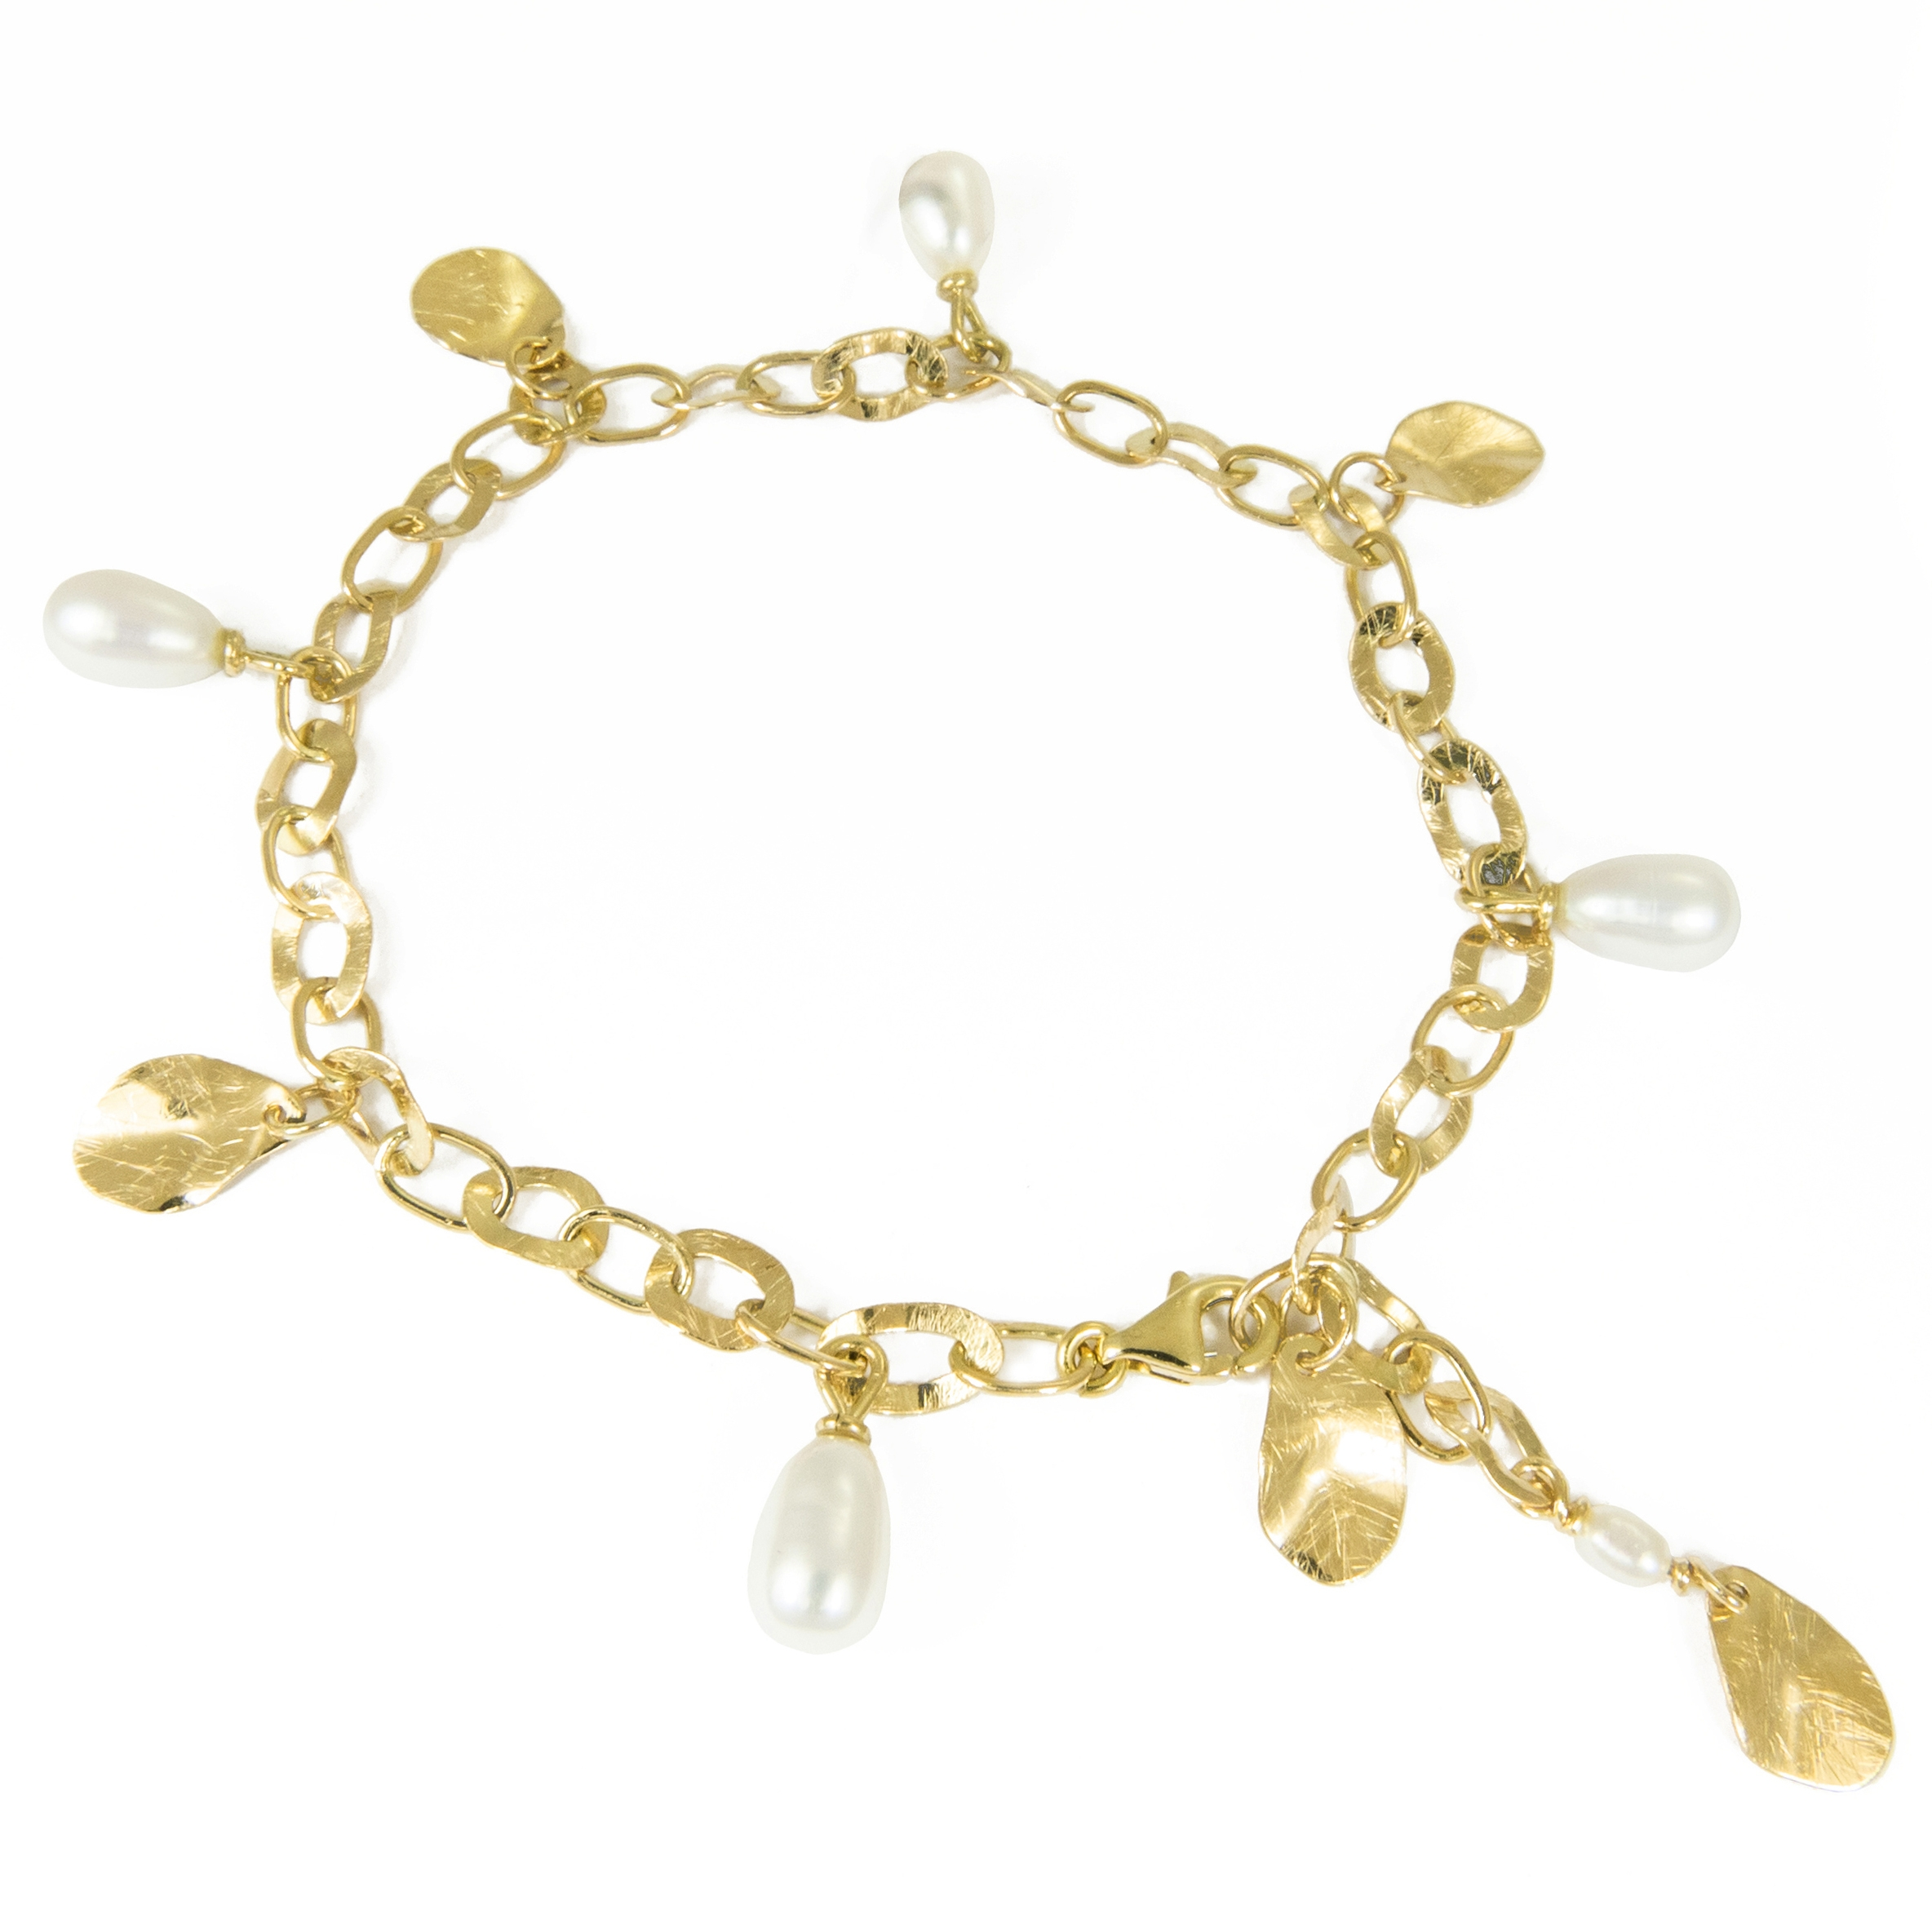 gold trembling shine with pearls